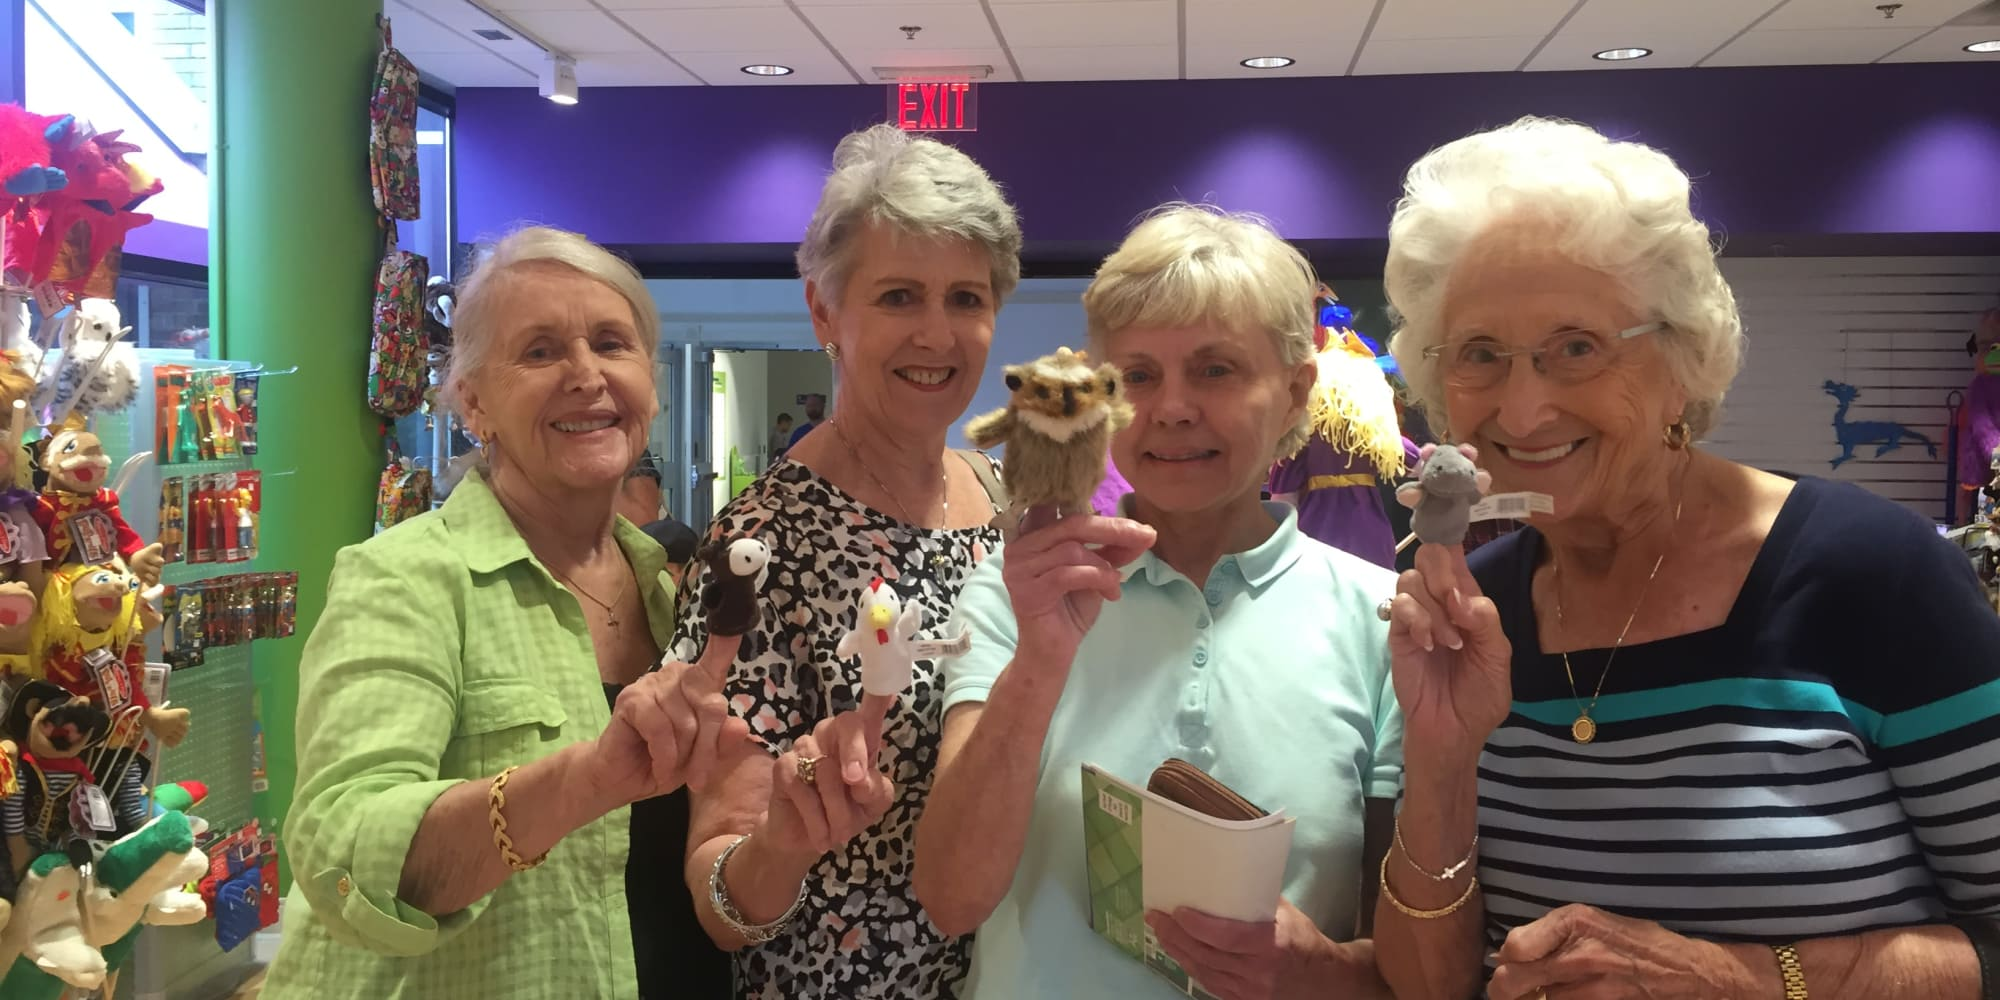 Residents from Rosewood Estates in Cobourg, Ontario with finger puppets in a store